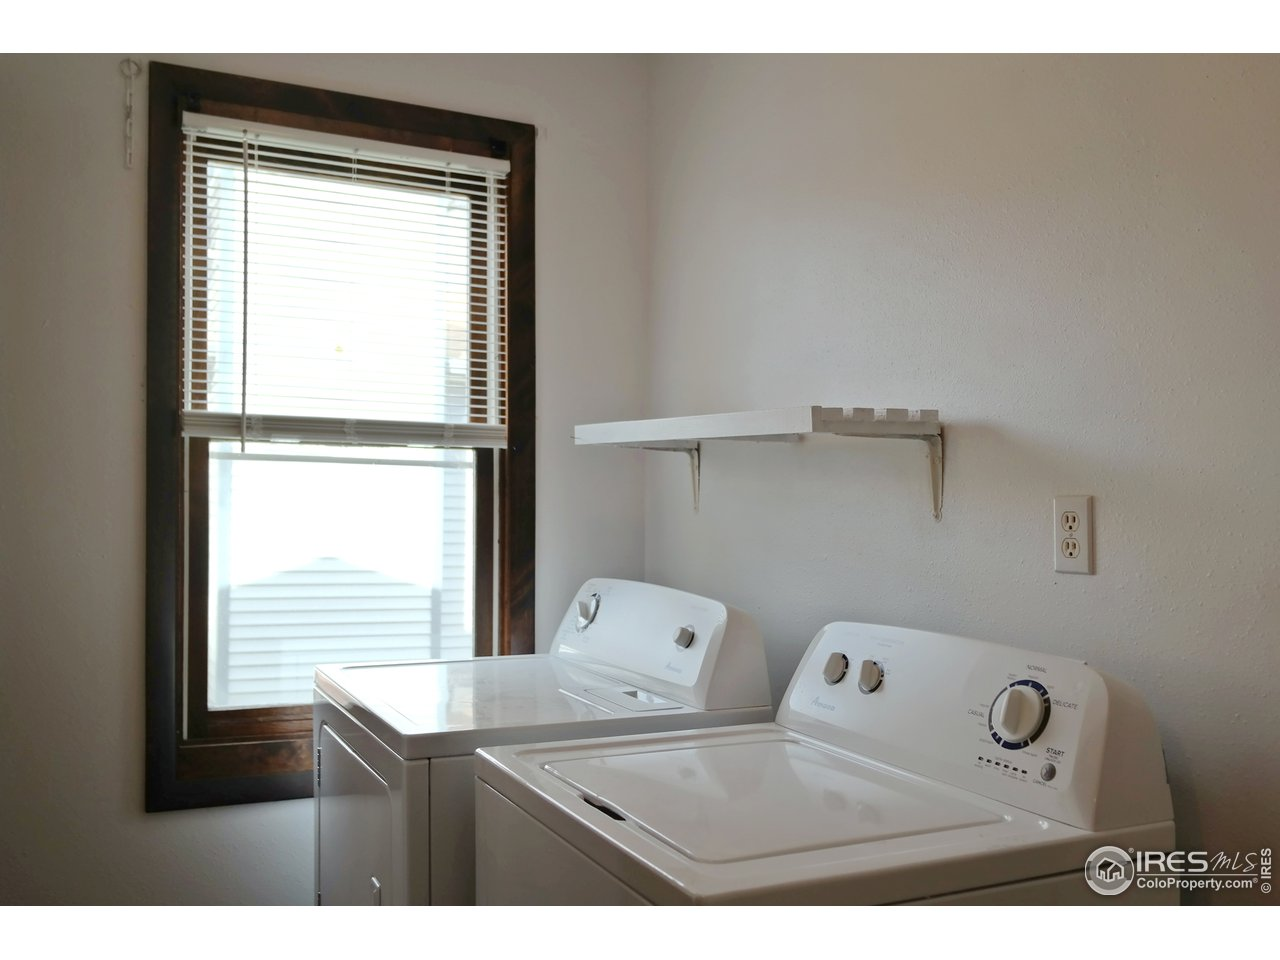 Bright Laundry Area w/Nice Window for Light